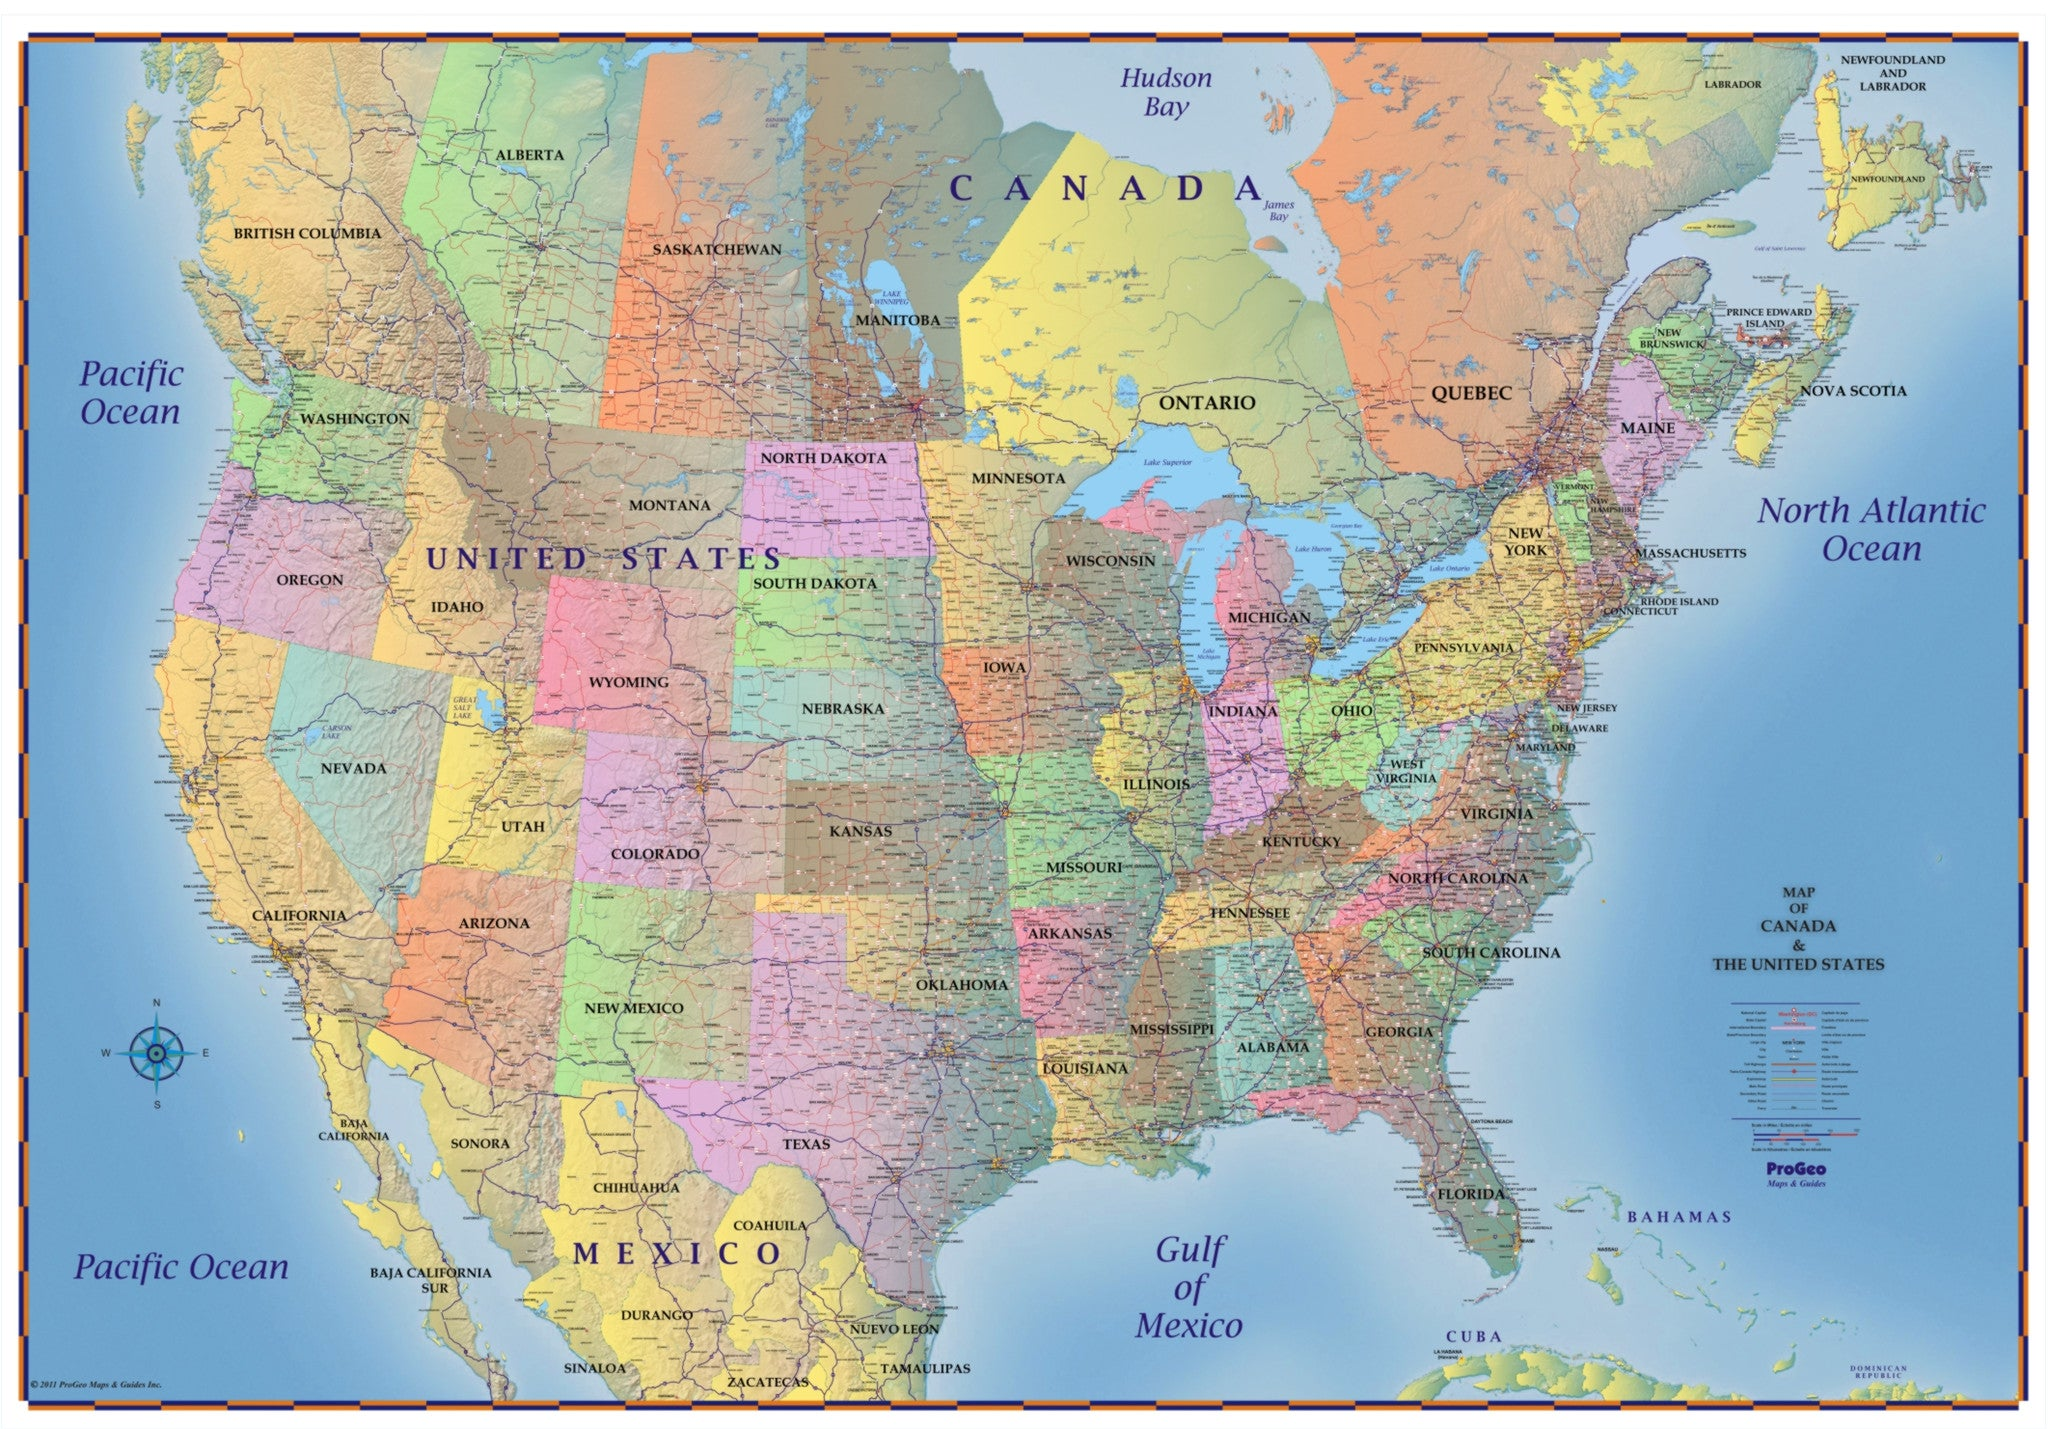 Map Of The United States And Canada World Map - Canada and usa map